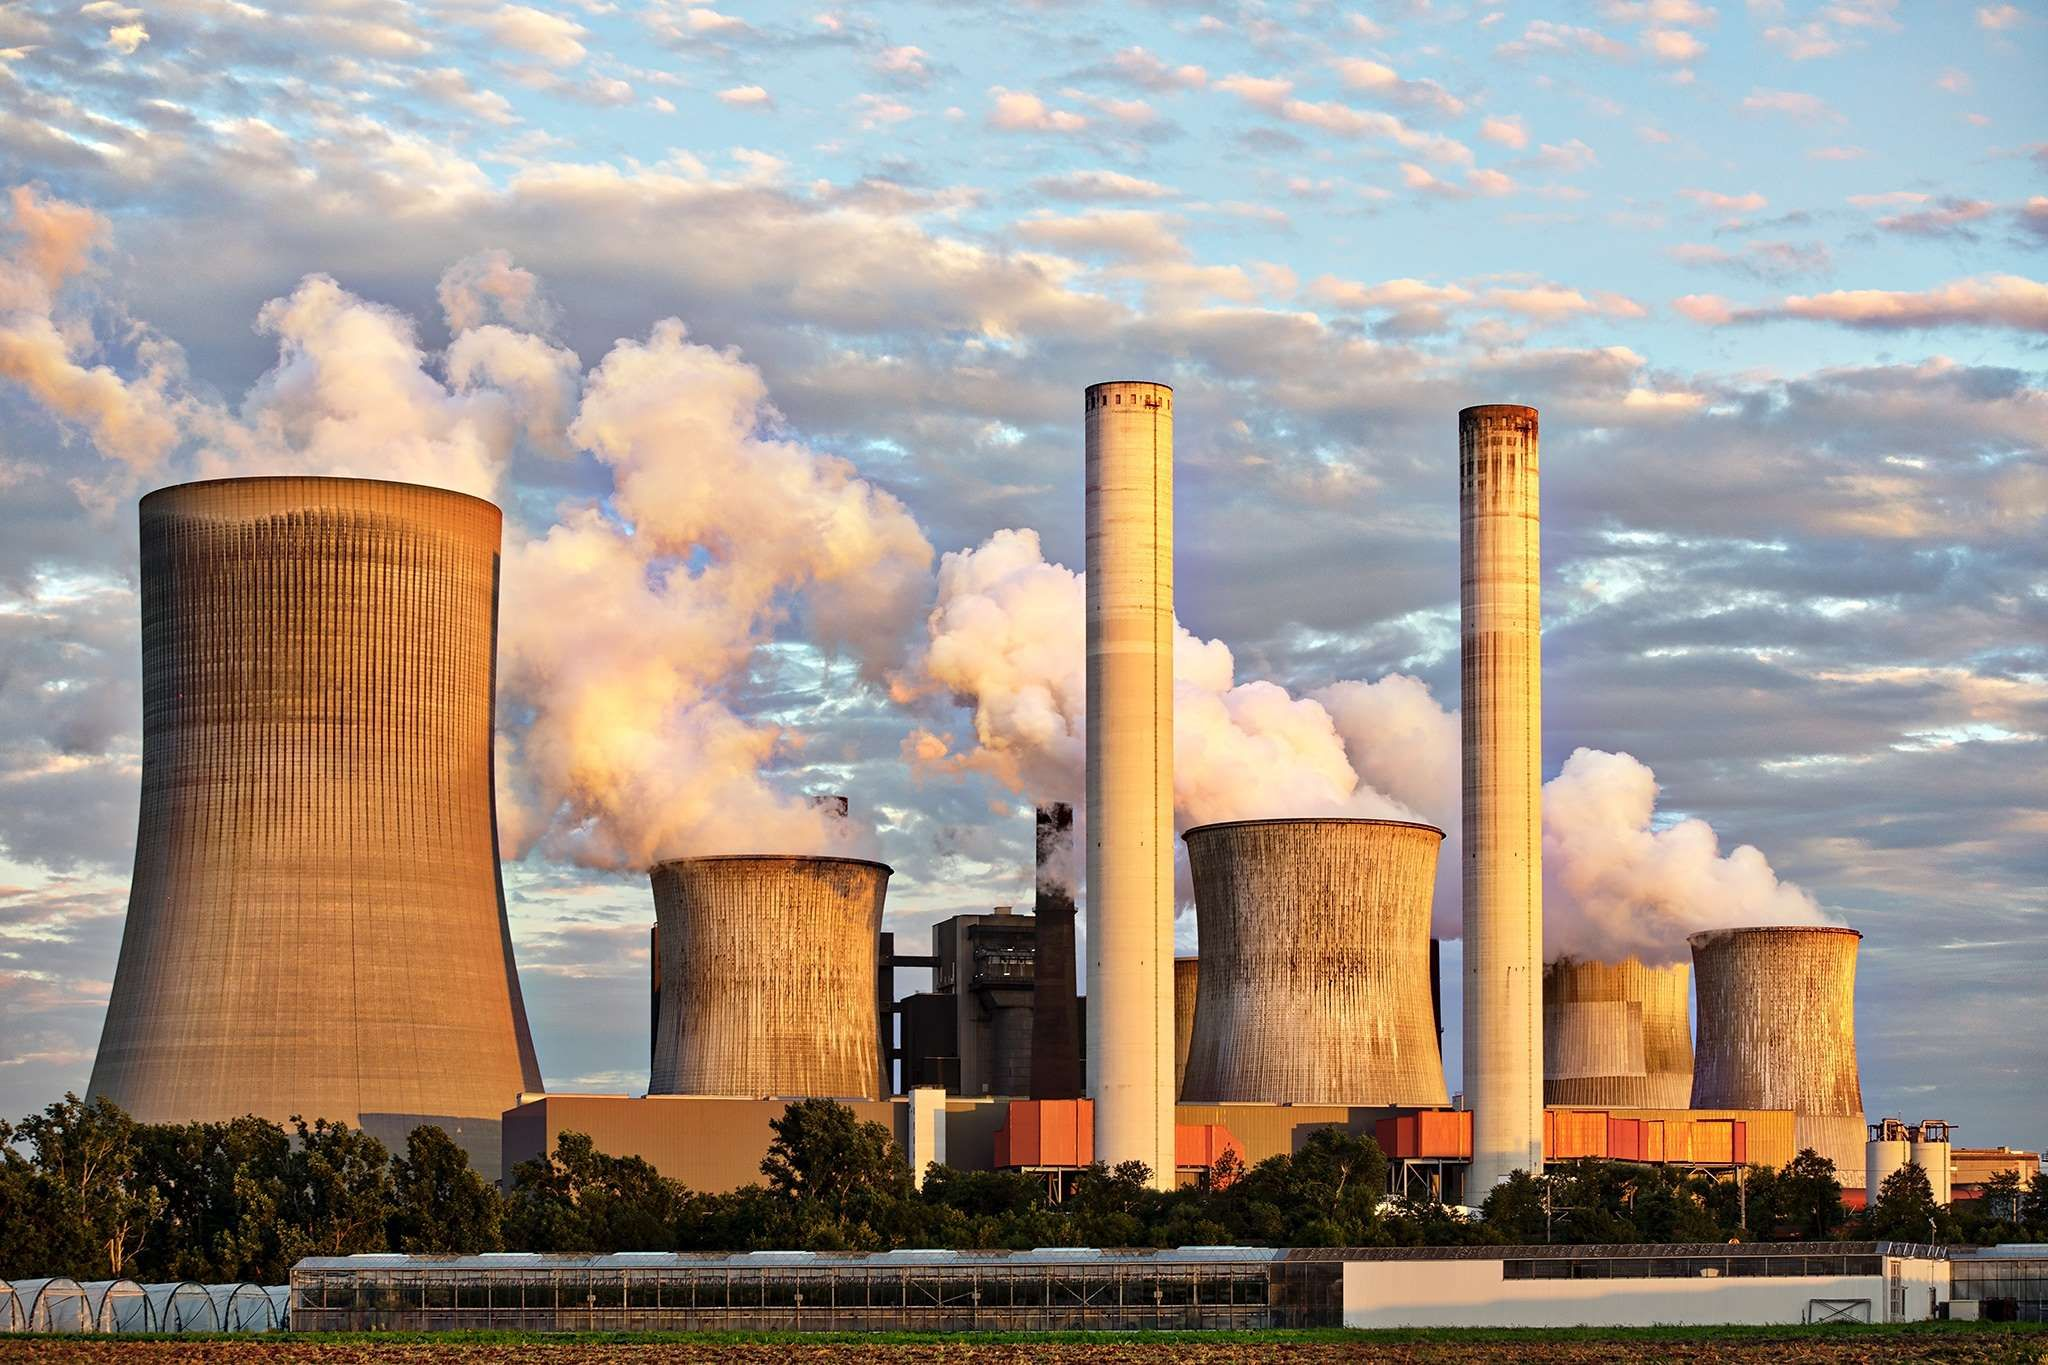 #air #air Pollution #chimney #clouds #current #electricity #energy #